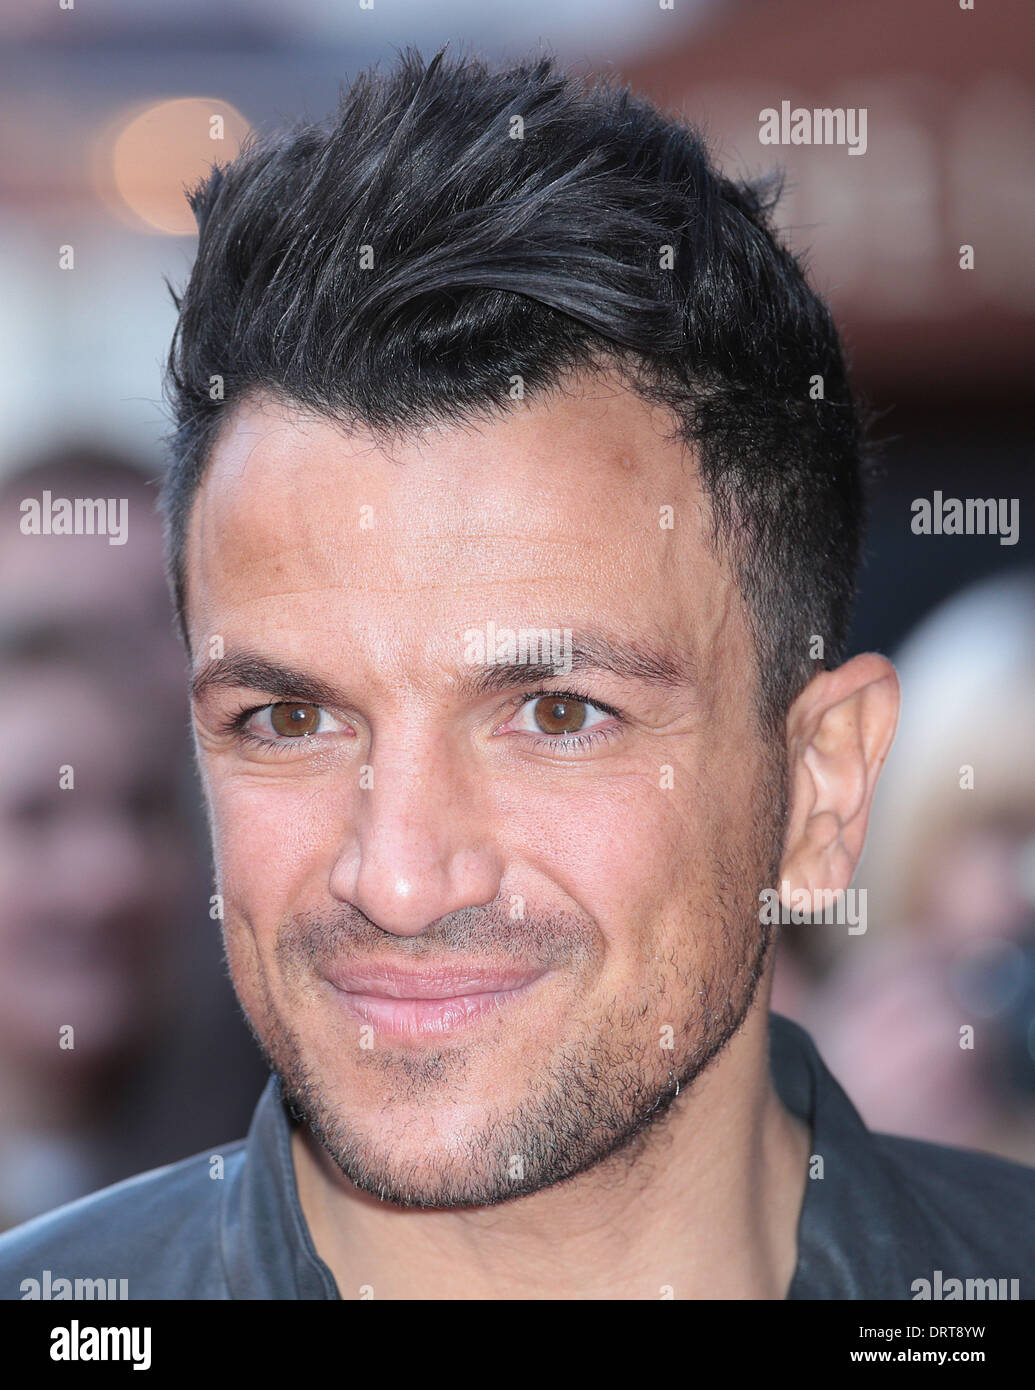 London uk 1st february 2014 peter andre arrives for the vip gala london uk 1st february 2014 peter andre arrives for the vip gala screening of mr peabody sherman 3d at vue cinema leicester square london photo mrp m4hsunfo